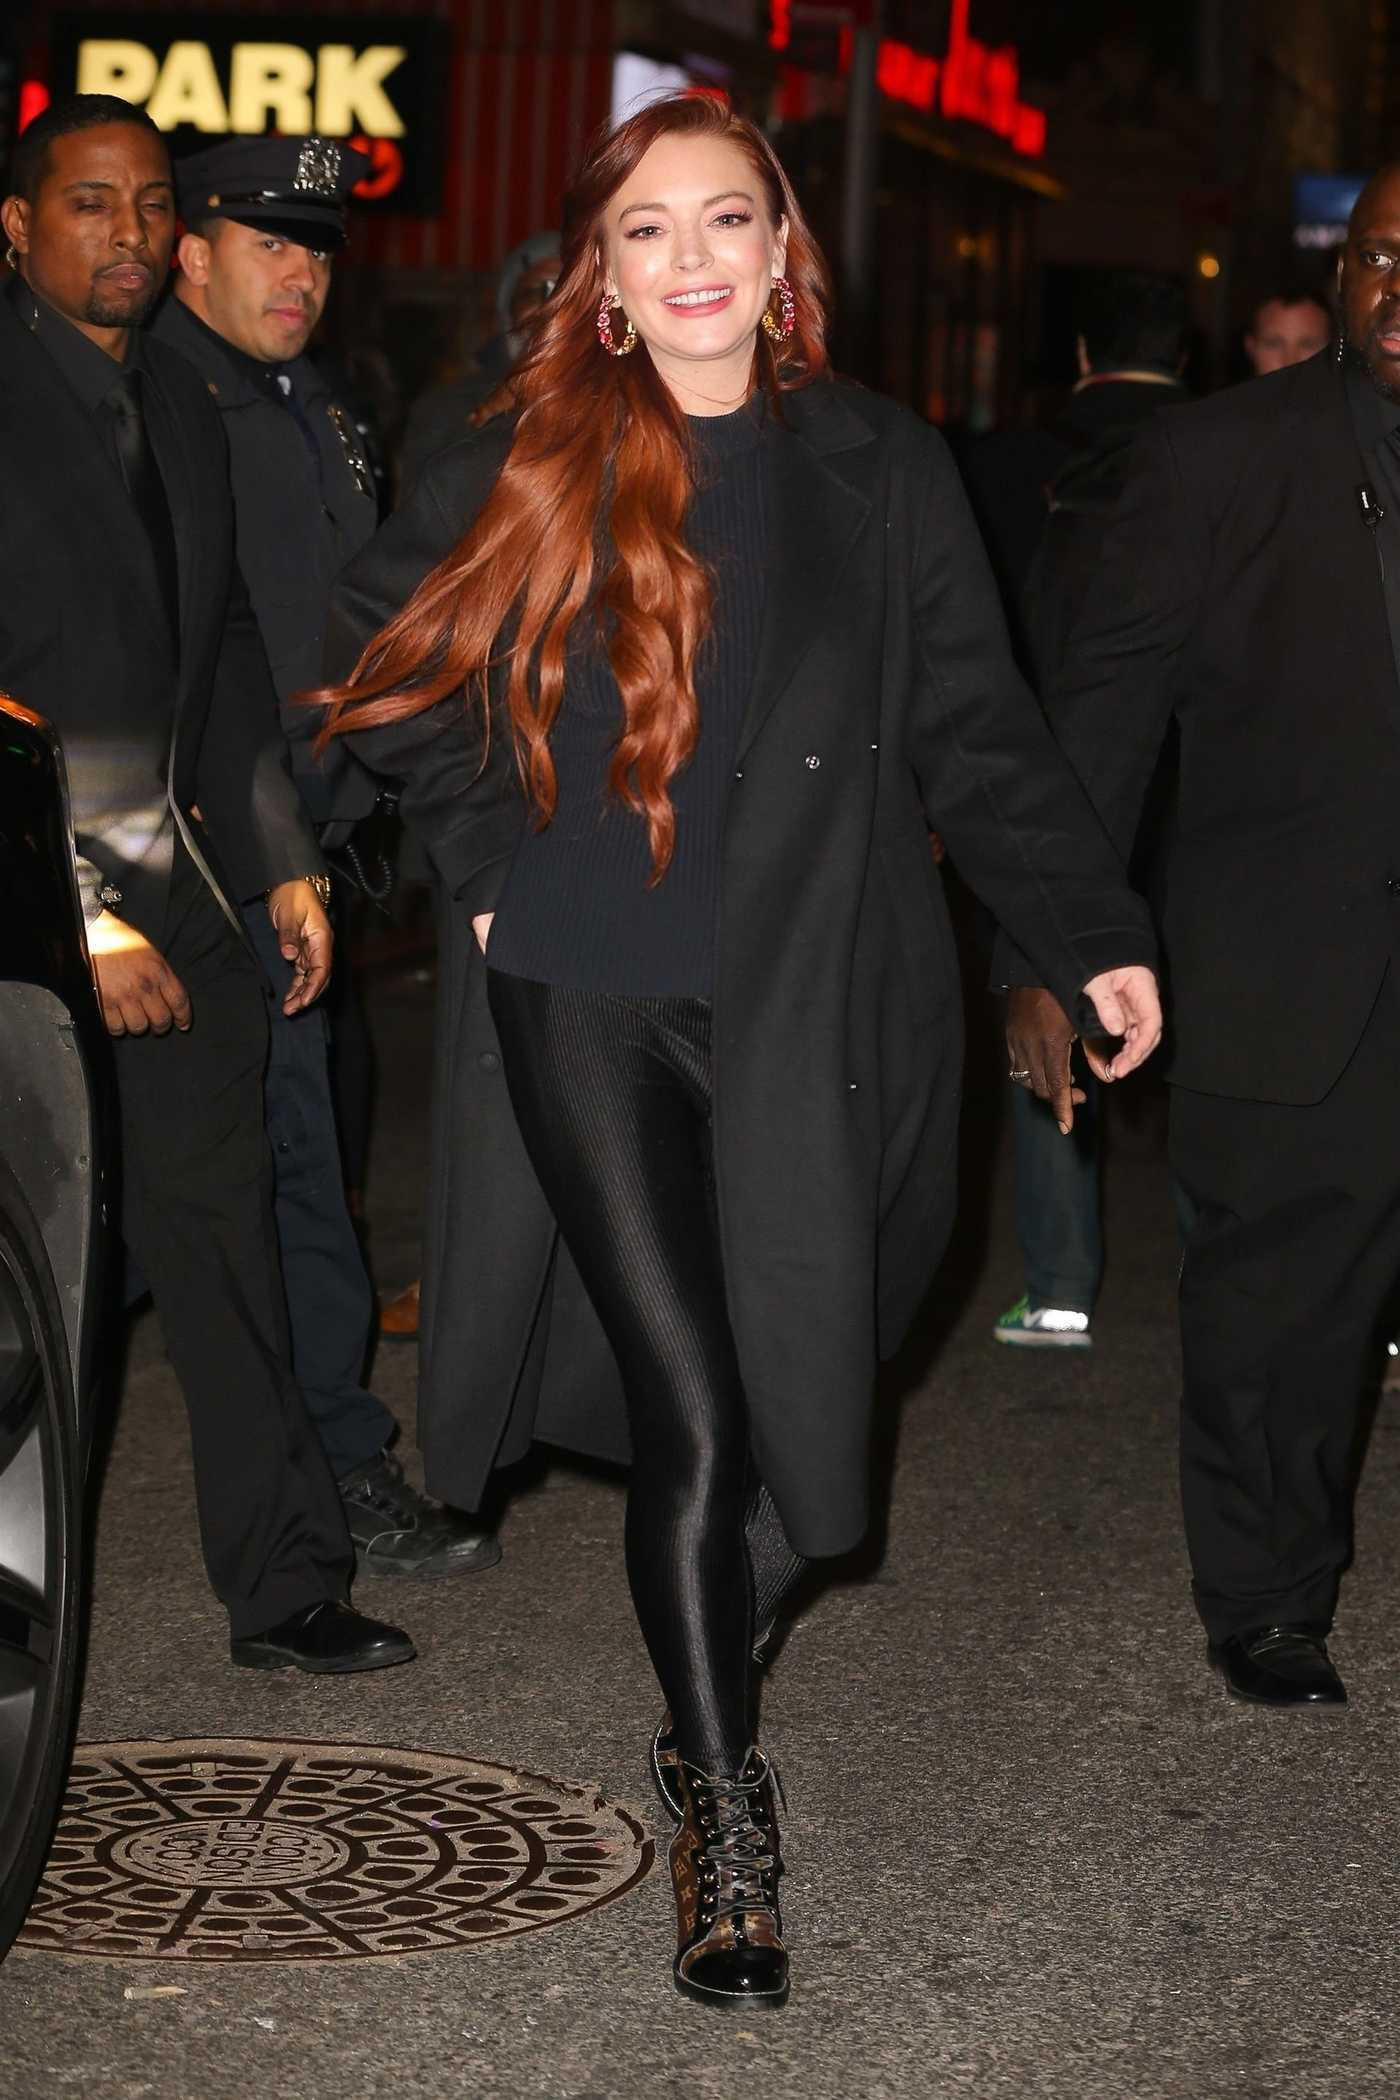 Lindsay Lohan in a Black Coat Leaves the MTV Studios in NYC 01/04/2019